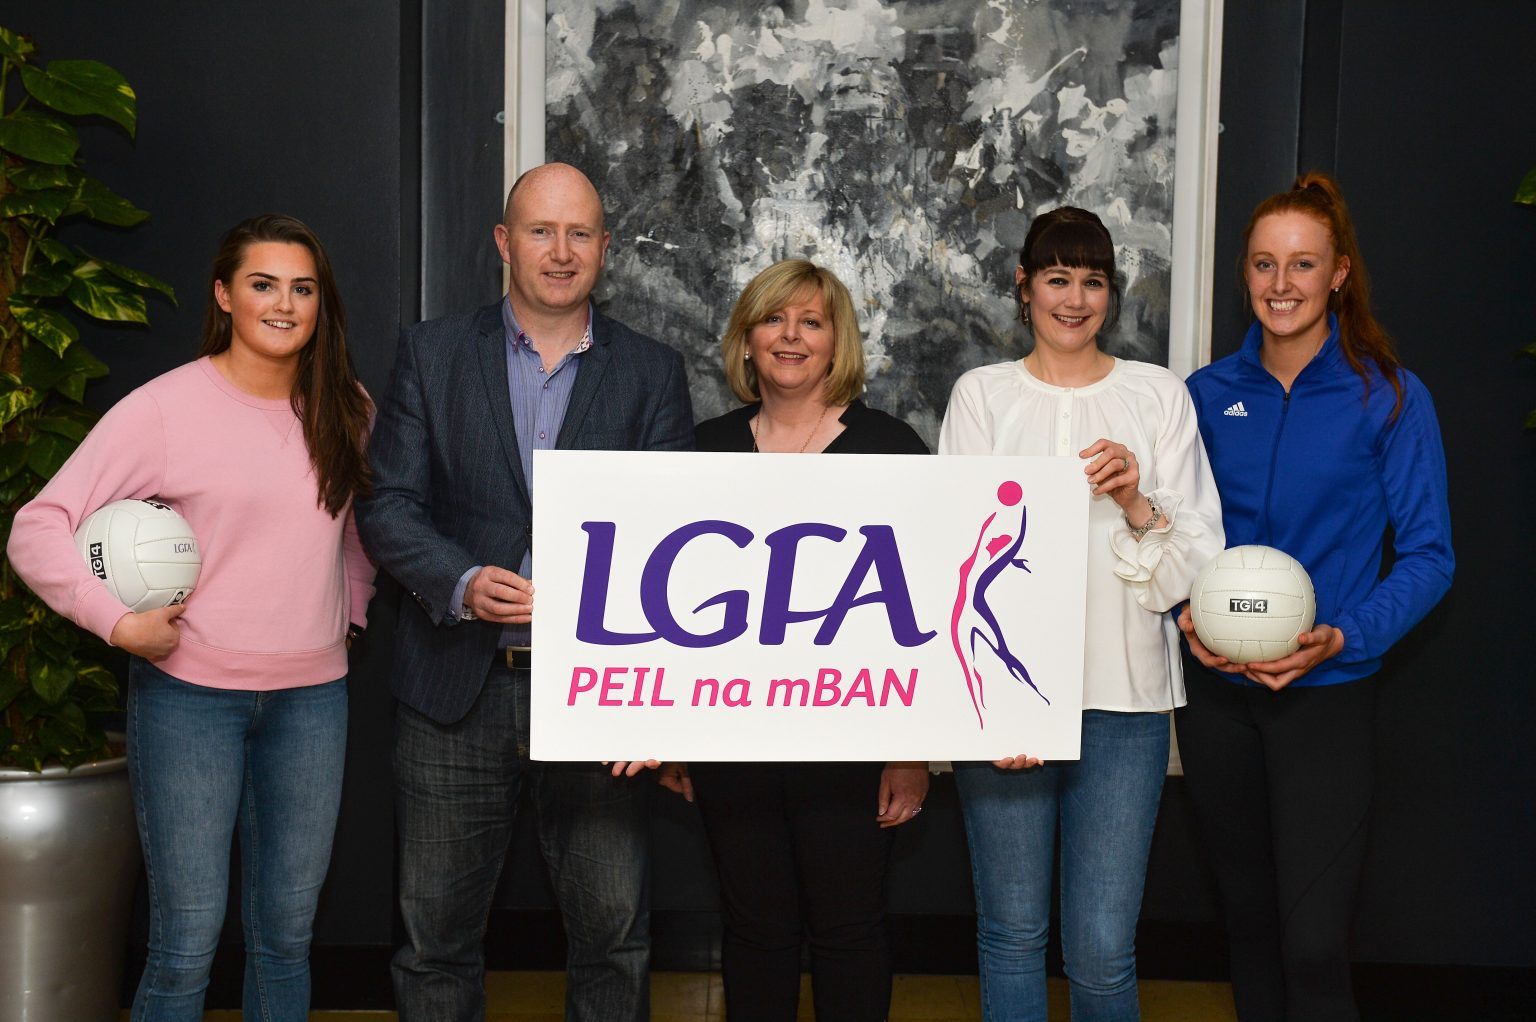 LGFA AND TG4 ANNOUNCE SUMMER CHAMPIONSHIP TV SCHEDULE